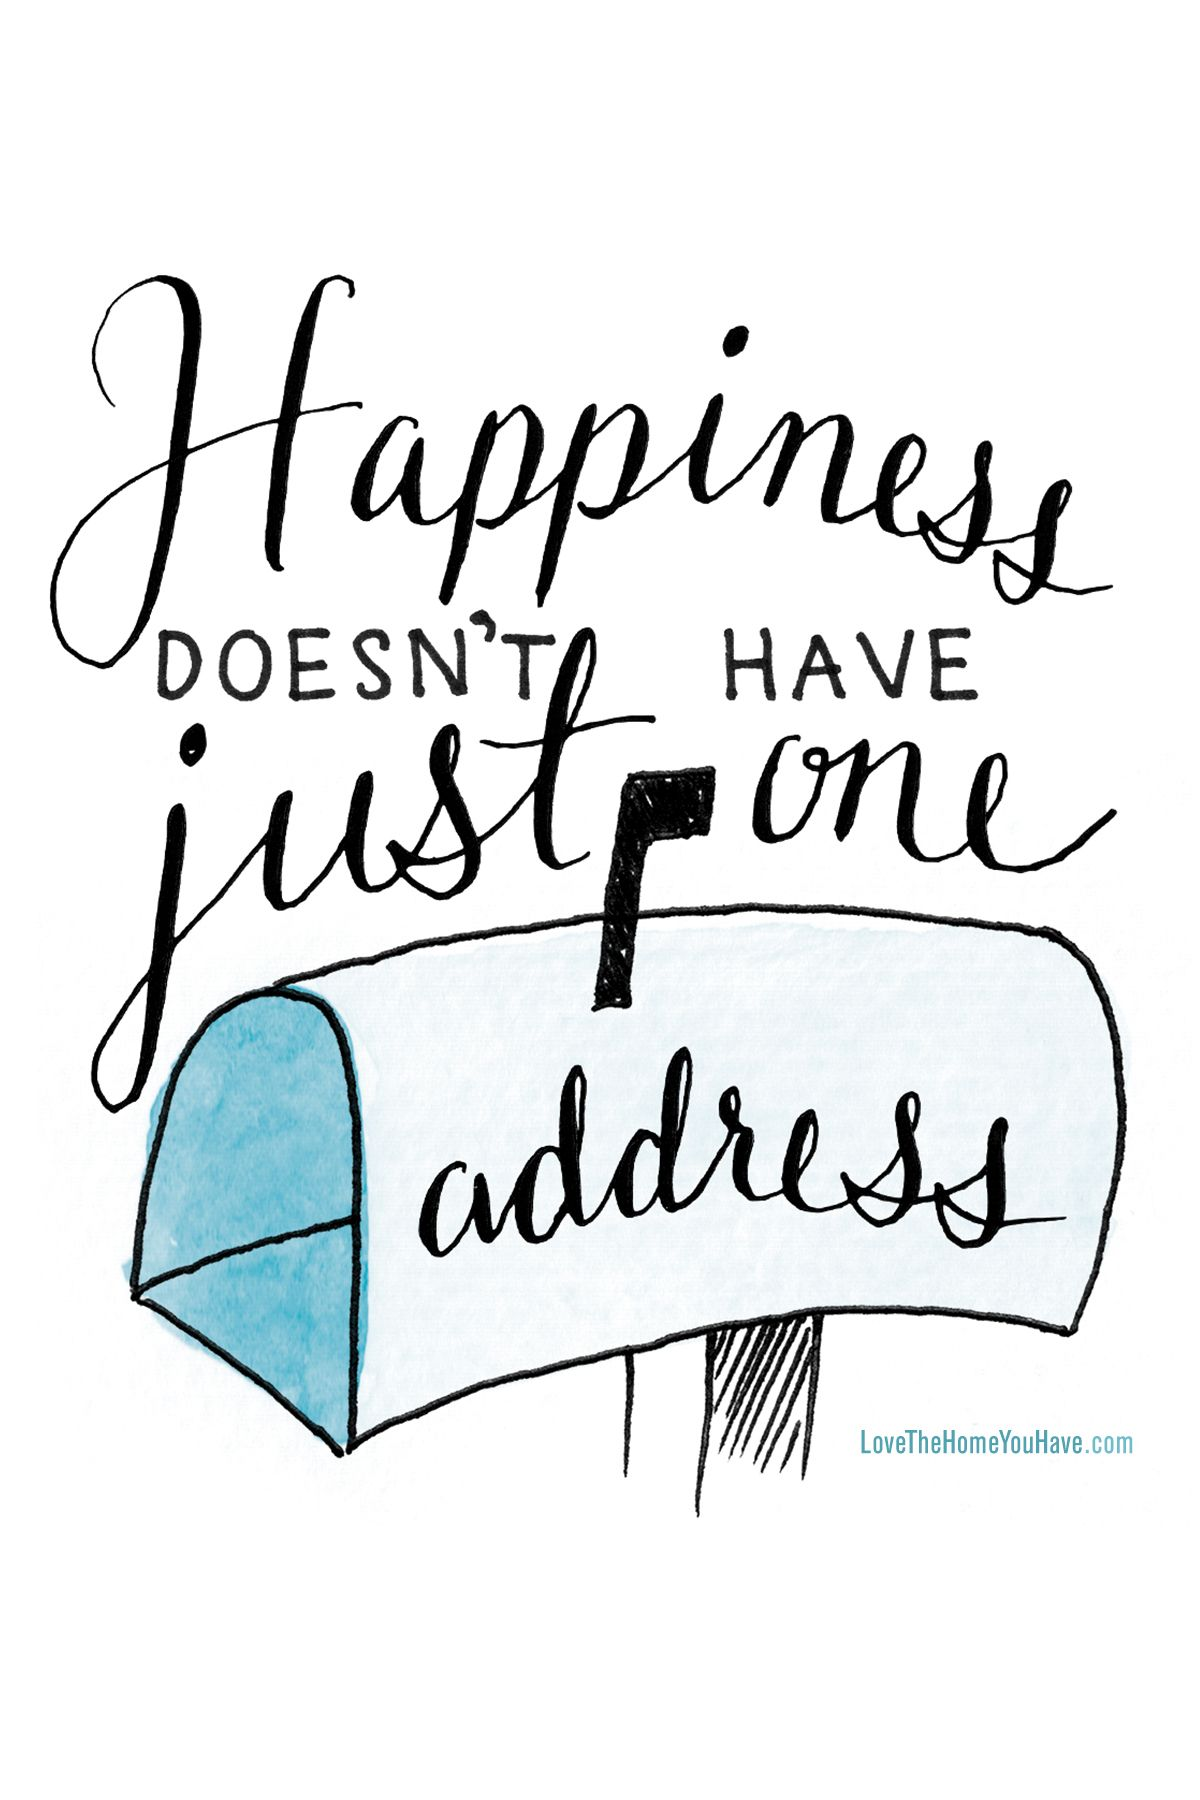 New Home Quotes Happiness Doesn't Have Just One Addressinspiration From The New